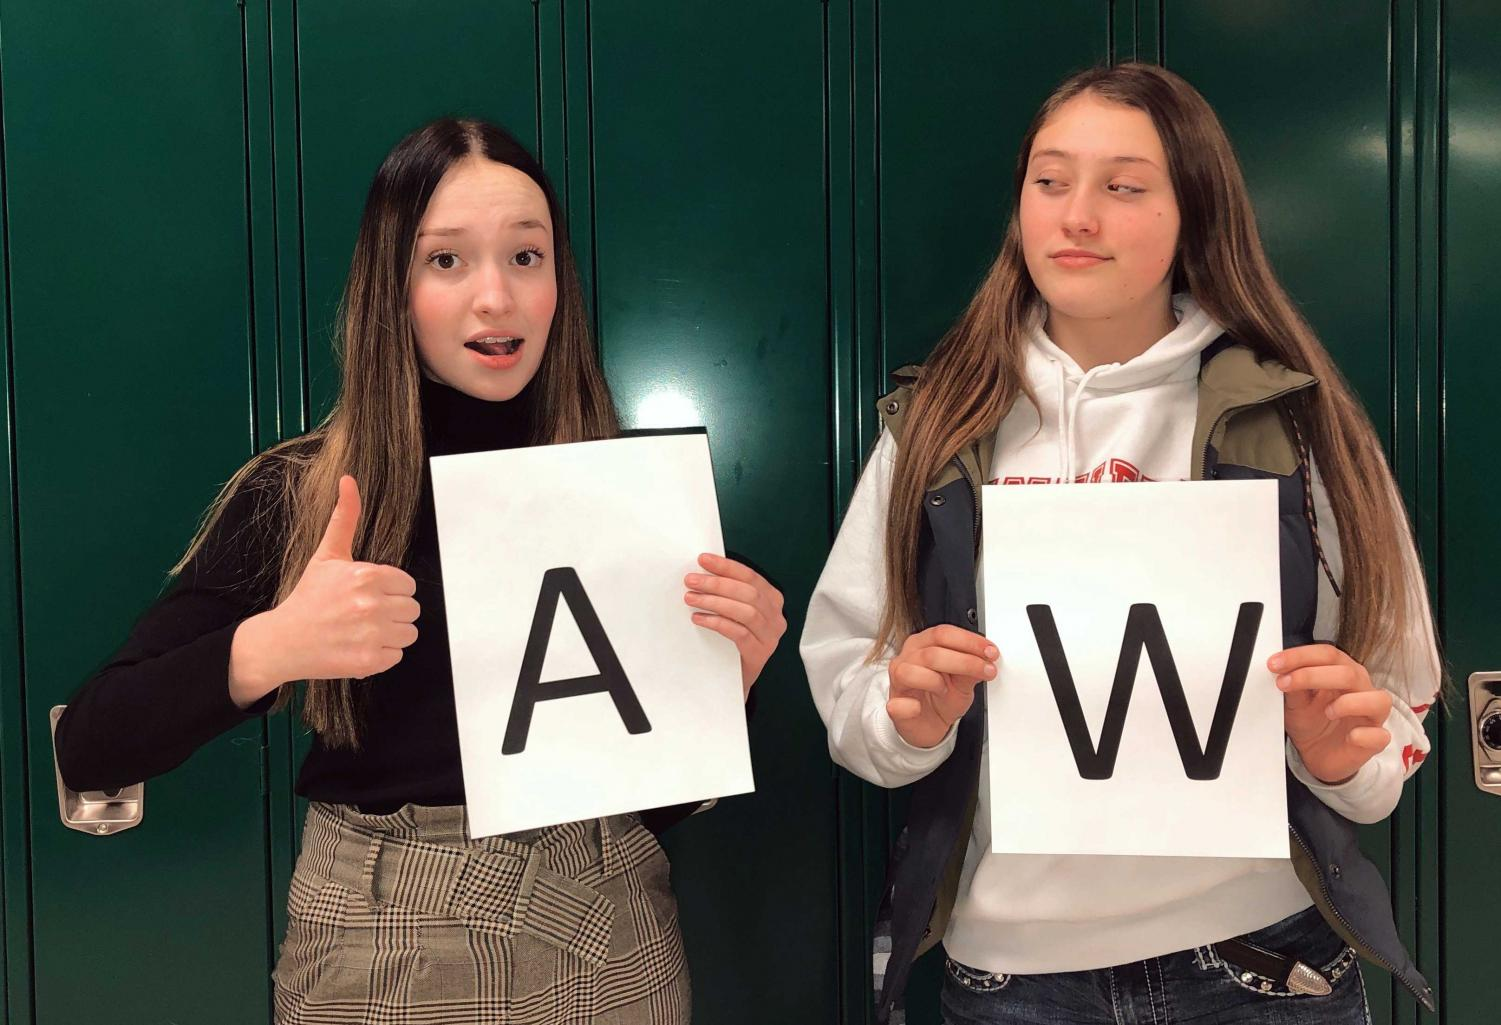 +Prowl+reporters+%28from+left%29+Kalli+Ashby+and+Emerson+Wormald+pose+for+a+picture+representing+their+feelings+toward+their+first+letter+of+their+last+name